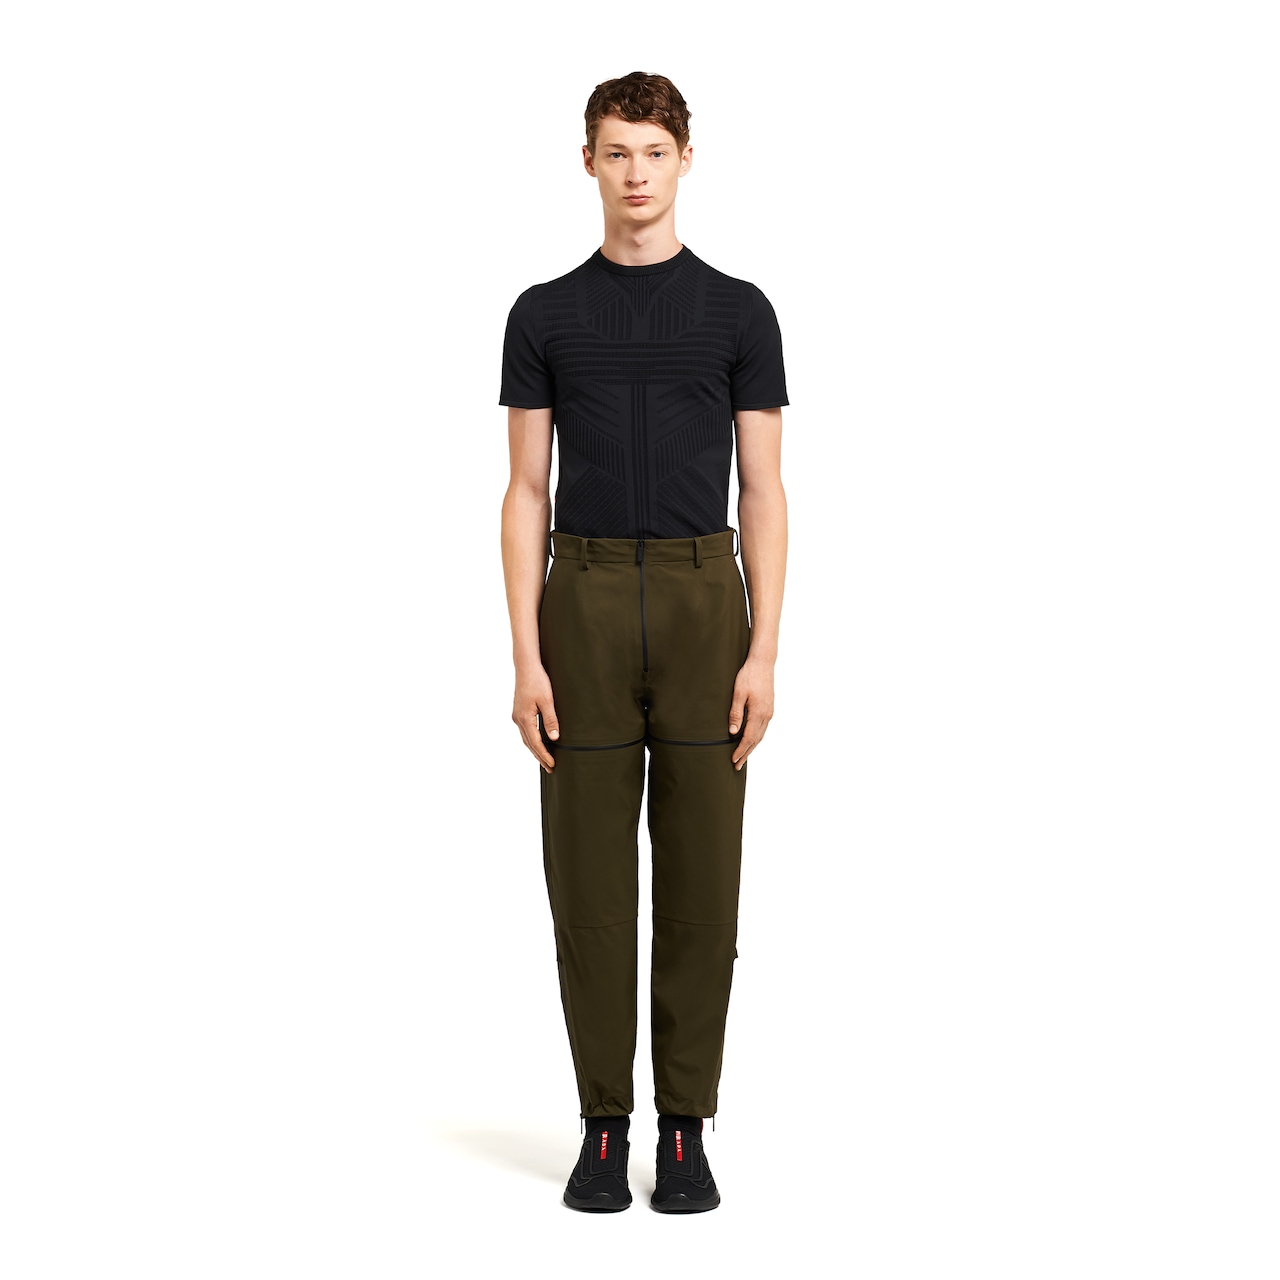 LR-MX014 professional technical fabric trousers 2